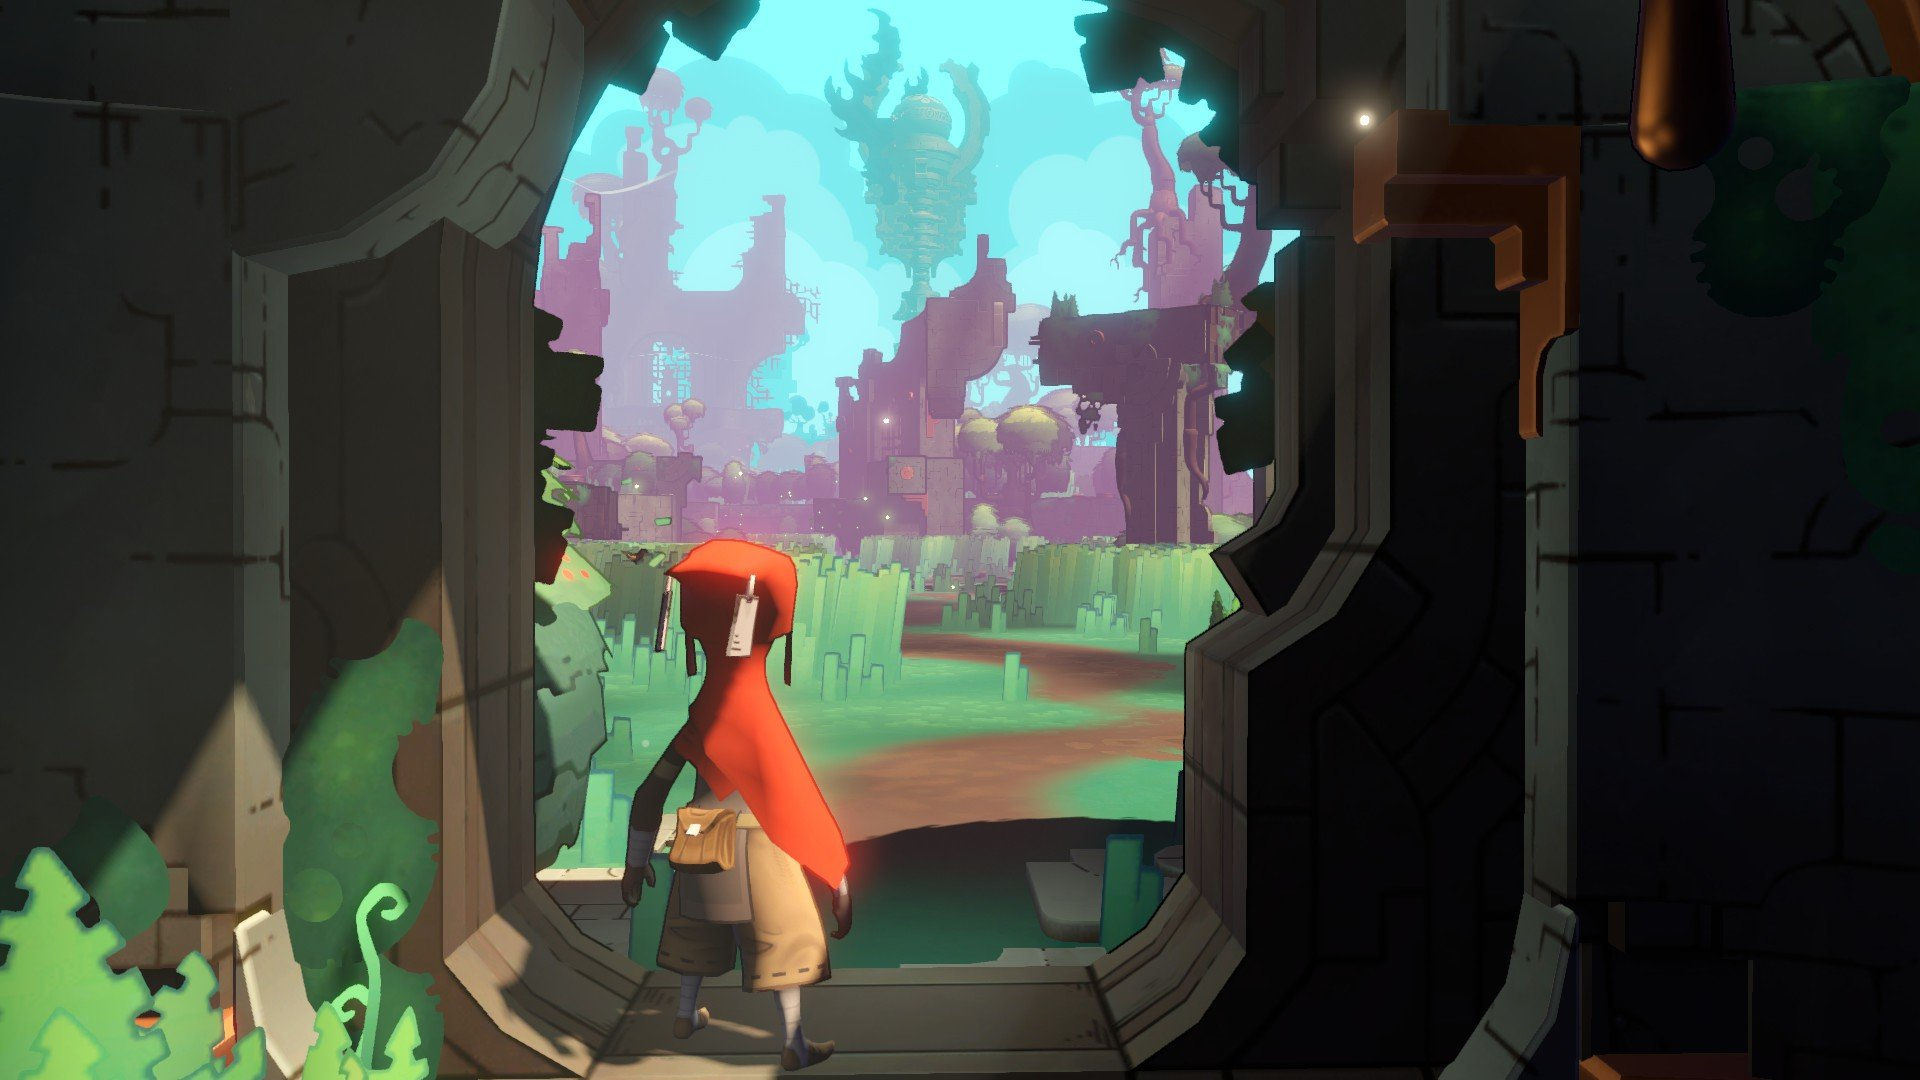 You're thrown immediately into the stunning world of Hob as soon as you press start.